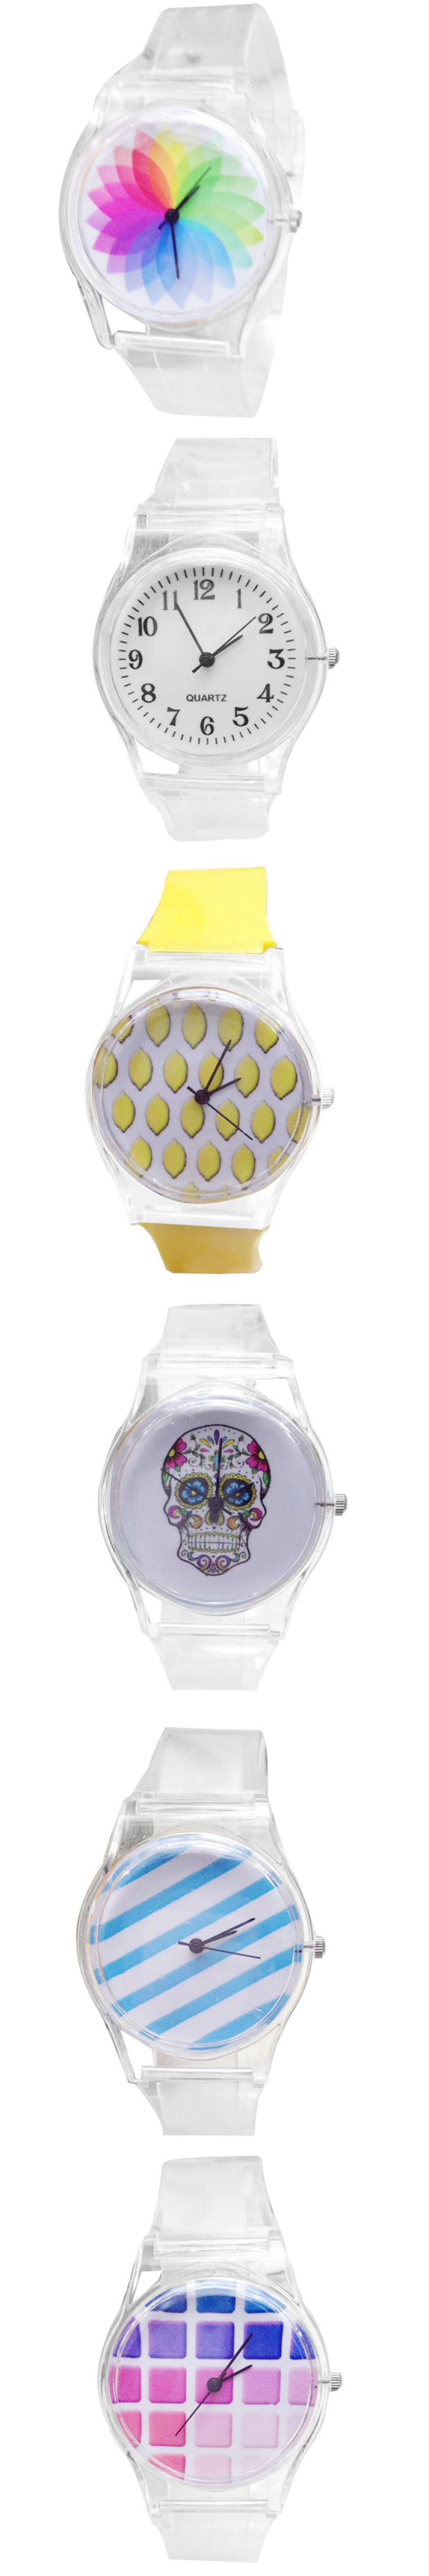 Kids Watches Lovely Watch Children Students Watch Girls Watches Wristwatch Simple Wristwatches